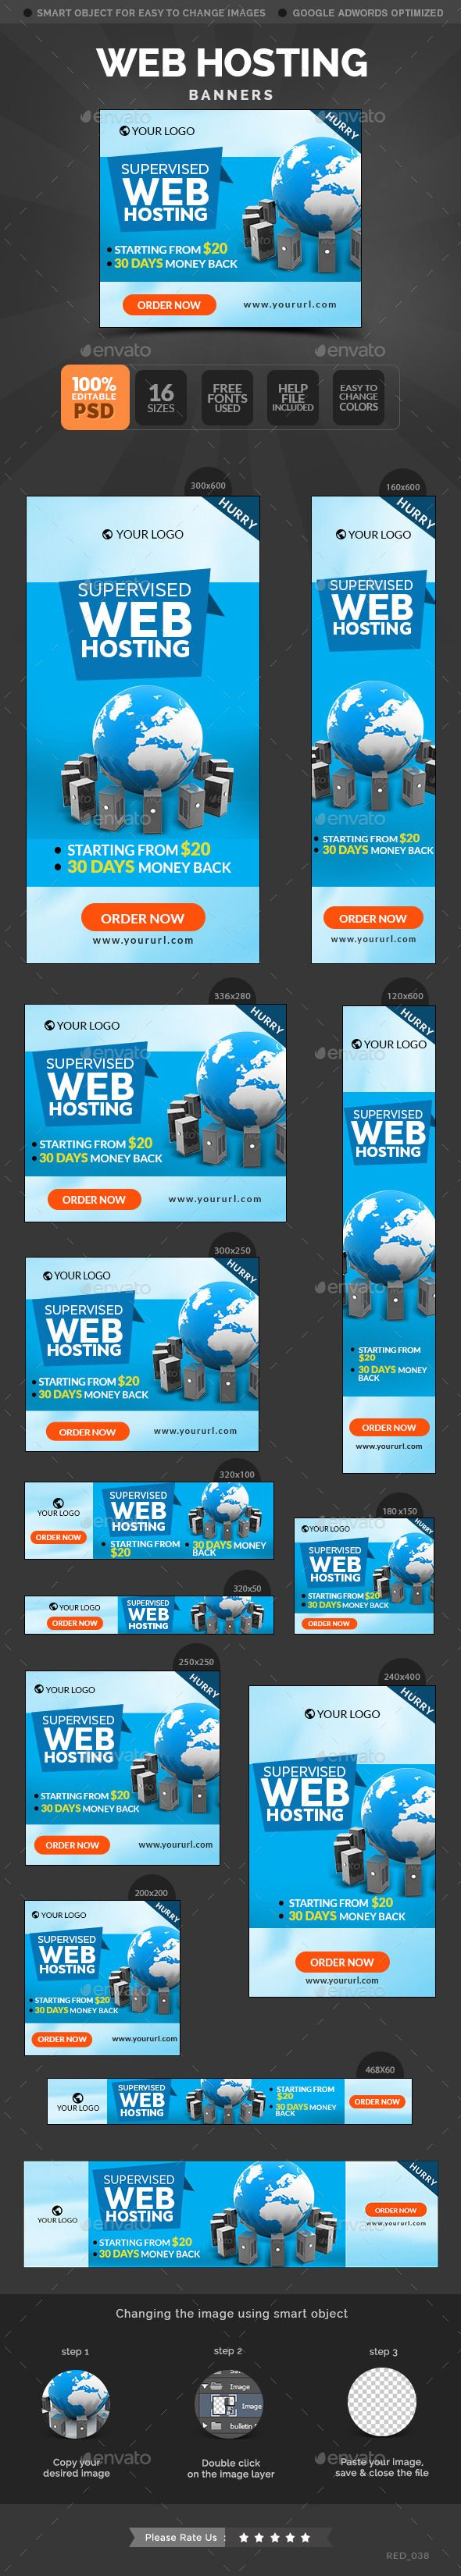 Web Hosting Banners Template #webbanners #design Download: http://graphicriver.net/item/web-hosting-banners/10799498?ref=ksioks